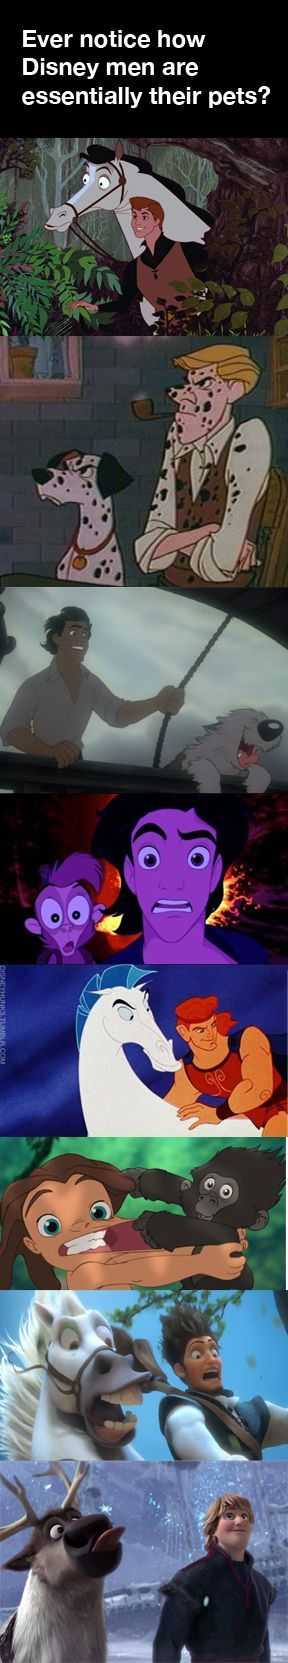 Disney men are their pets. Or their animal best friends.